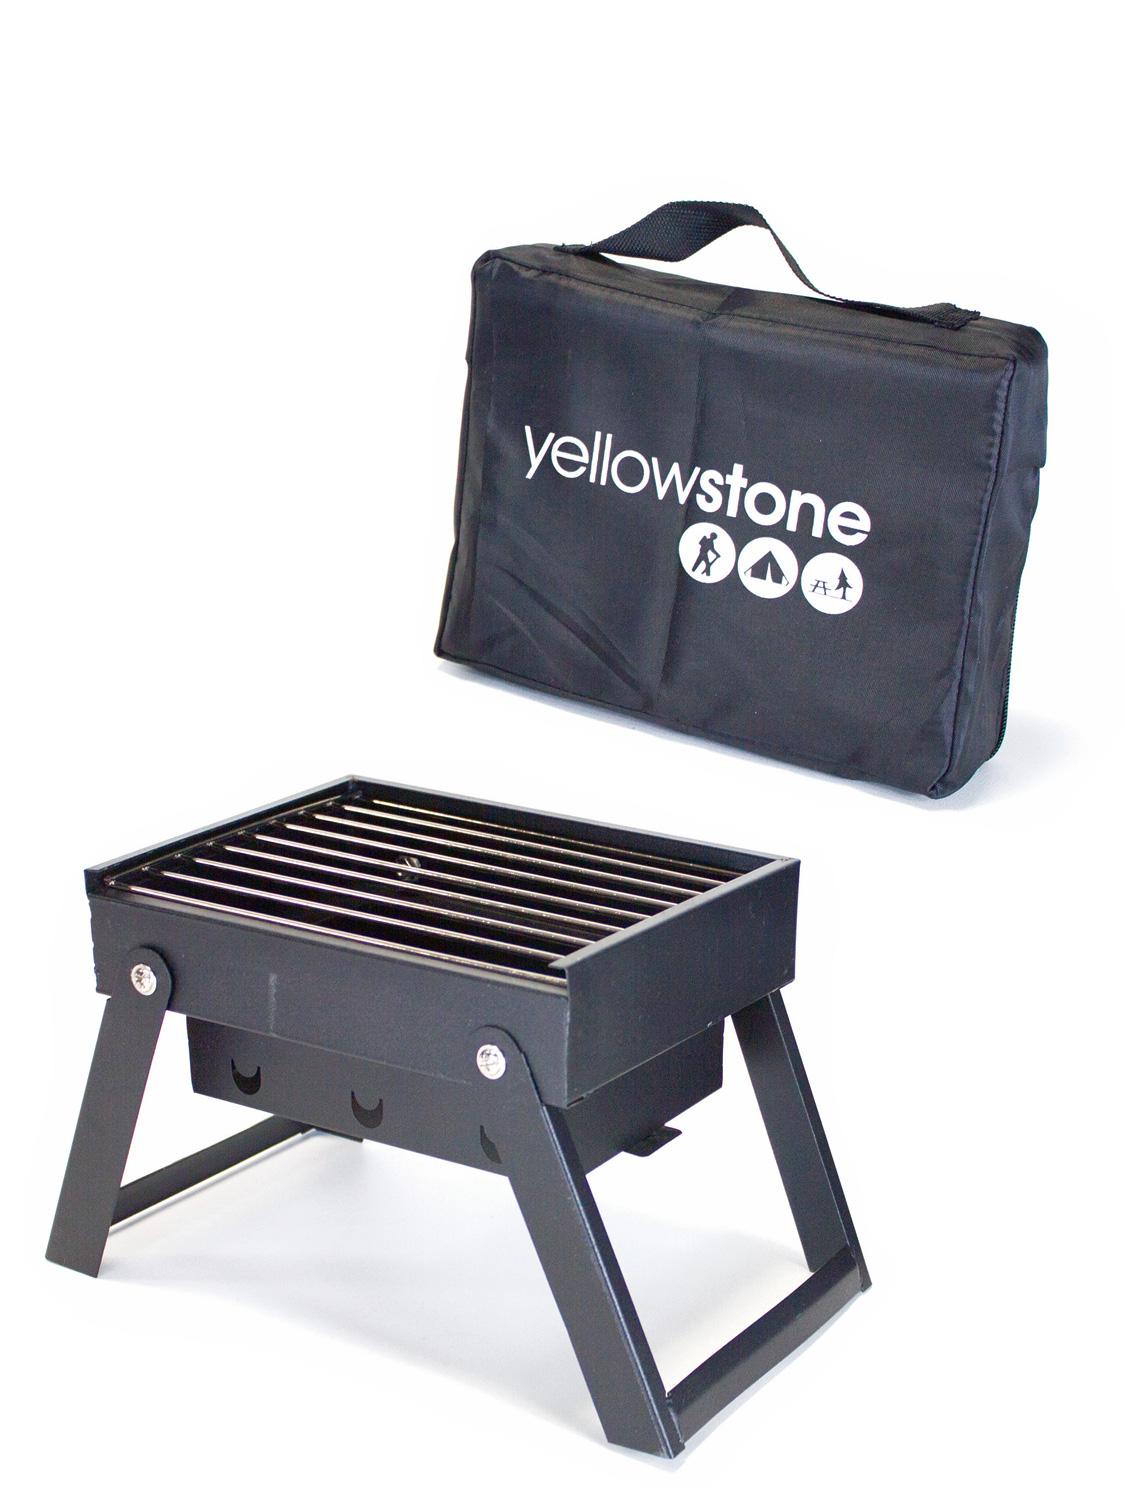 yellowstone mini folding portable bbq barbeque picnic travel camping grill. Black Bedroom Furniture Sets. Home Design Ideas